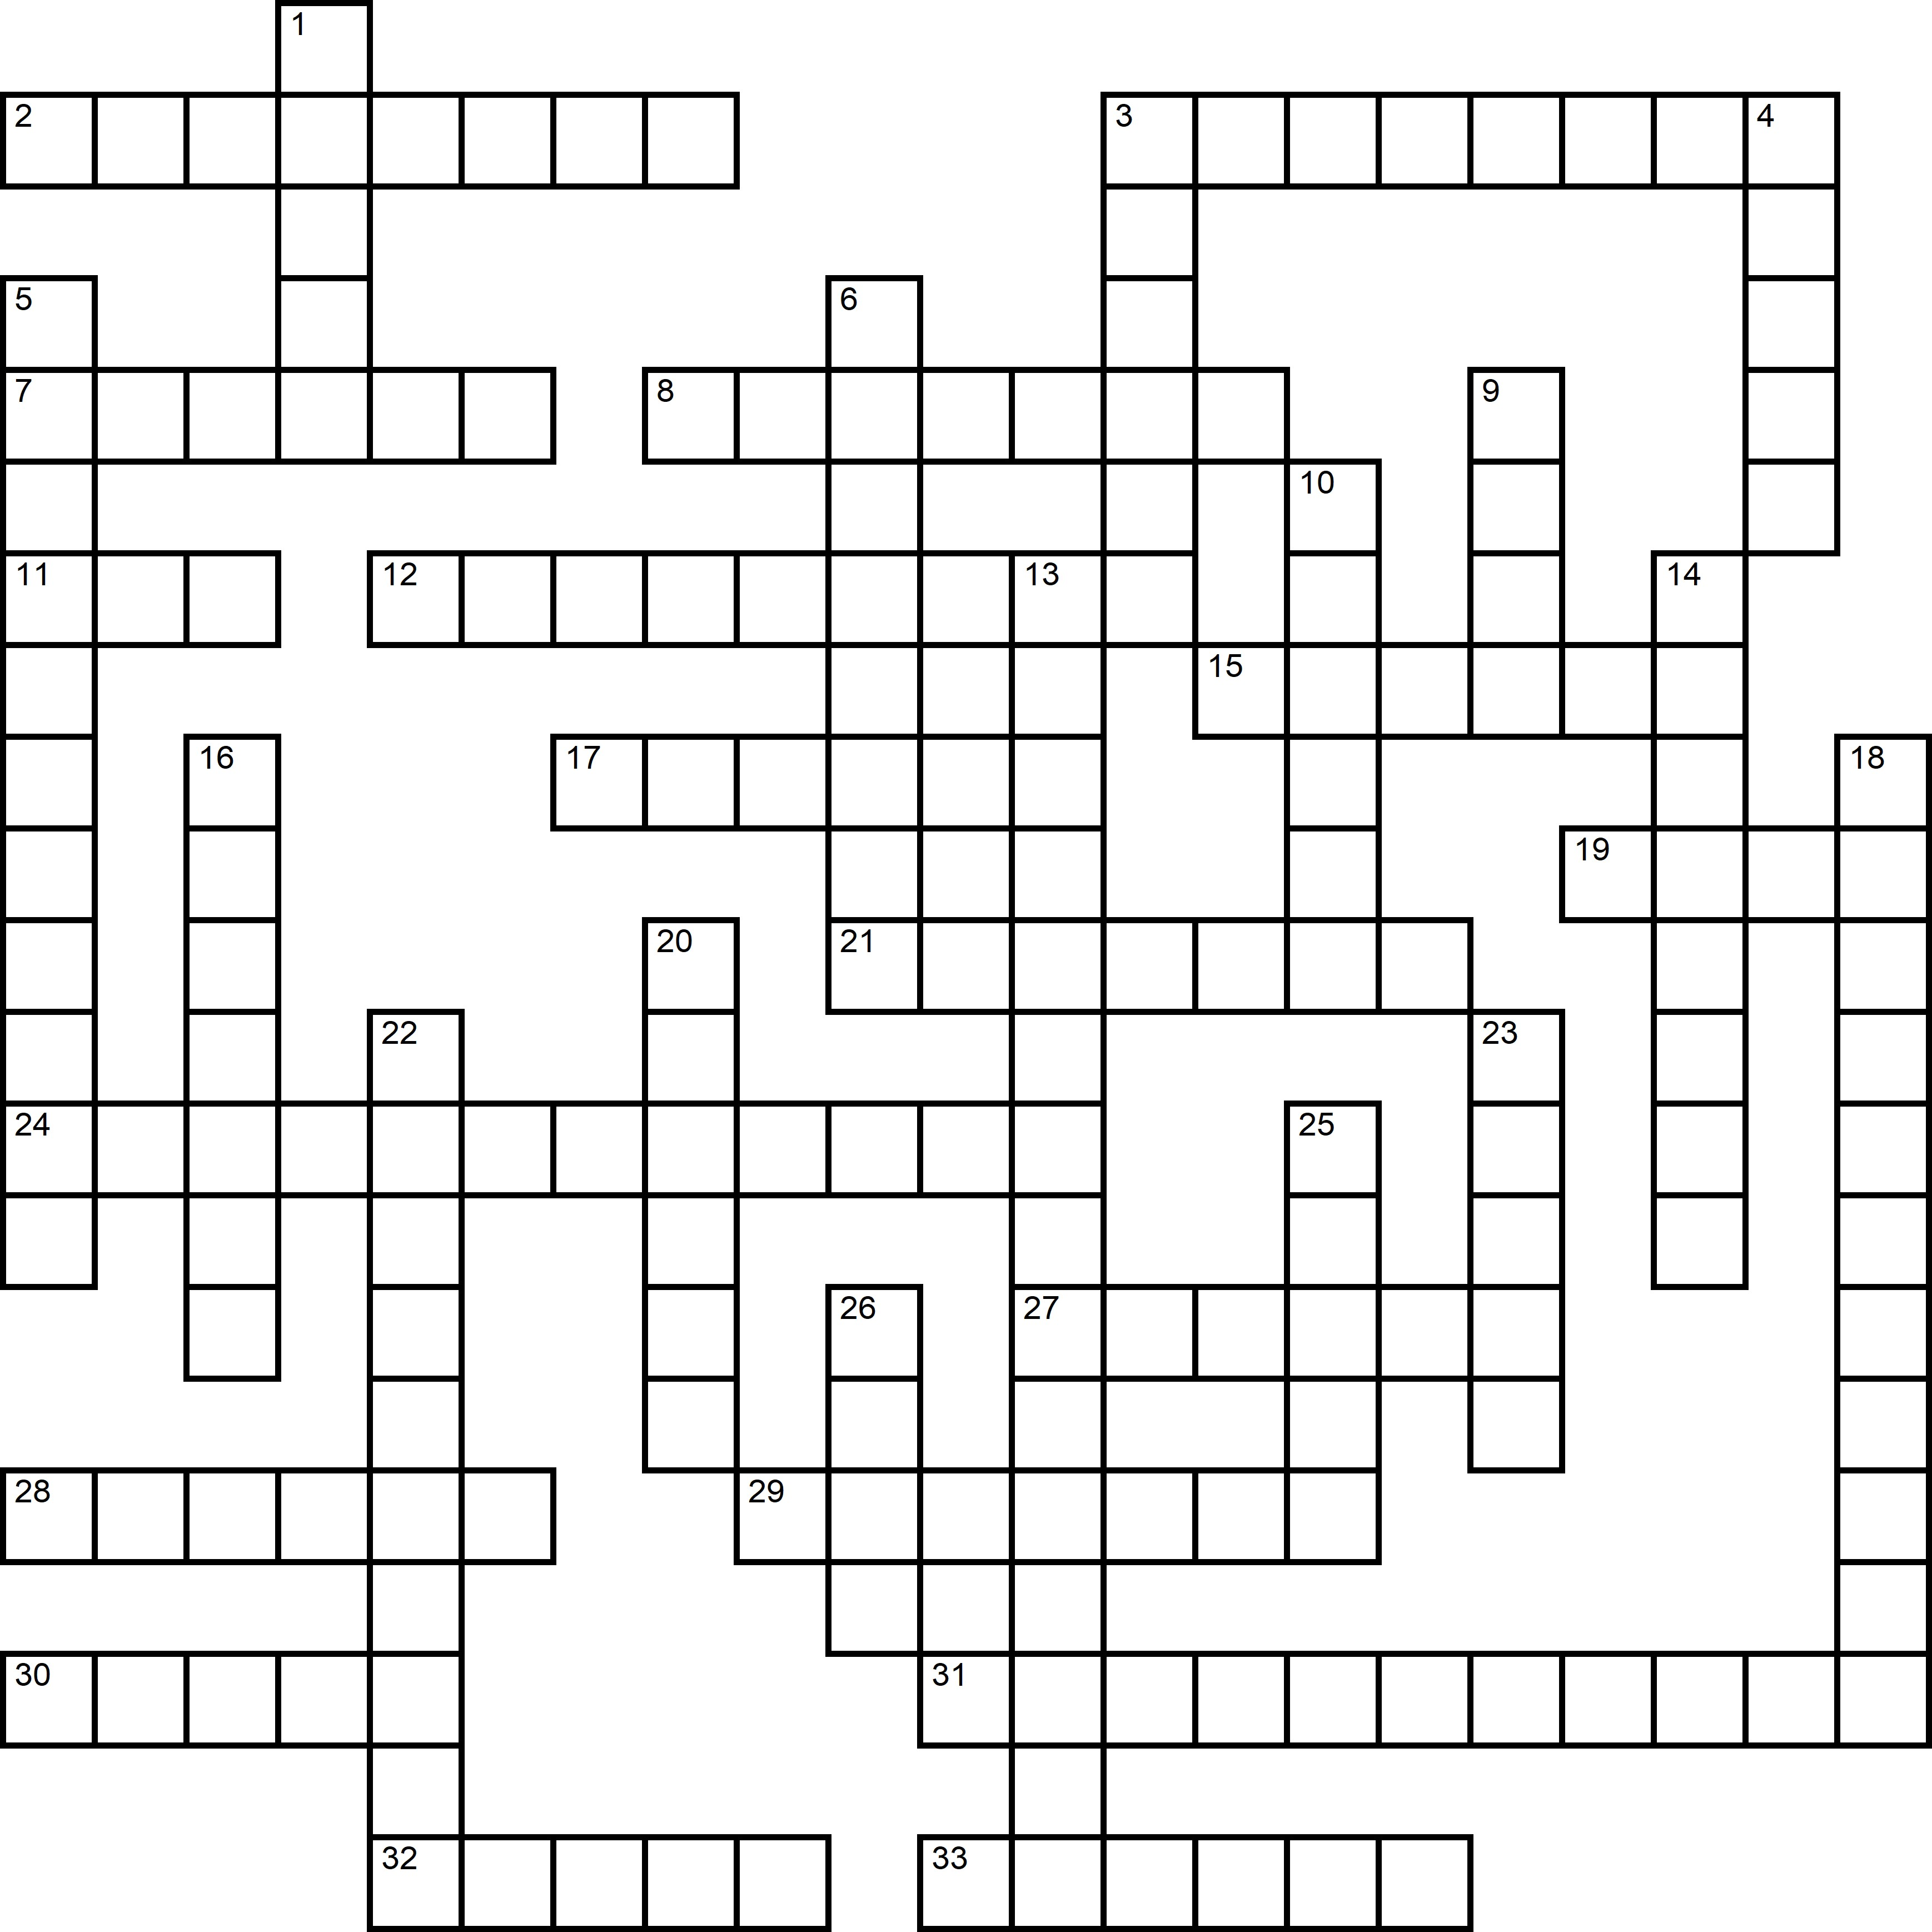 Easy Crossword About Food